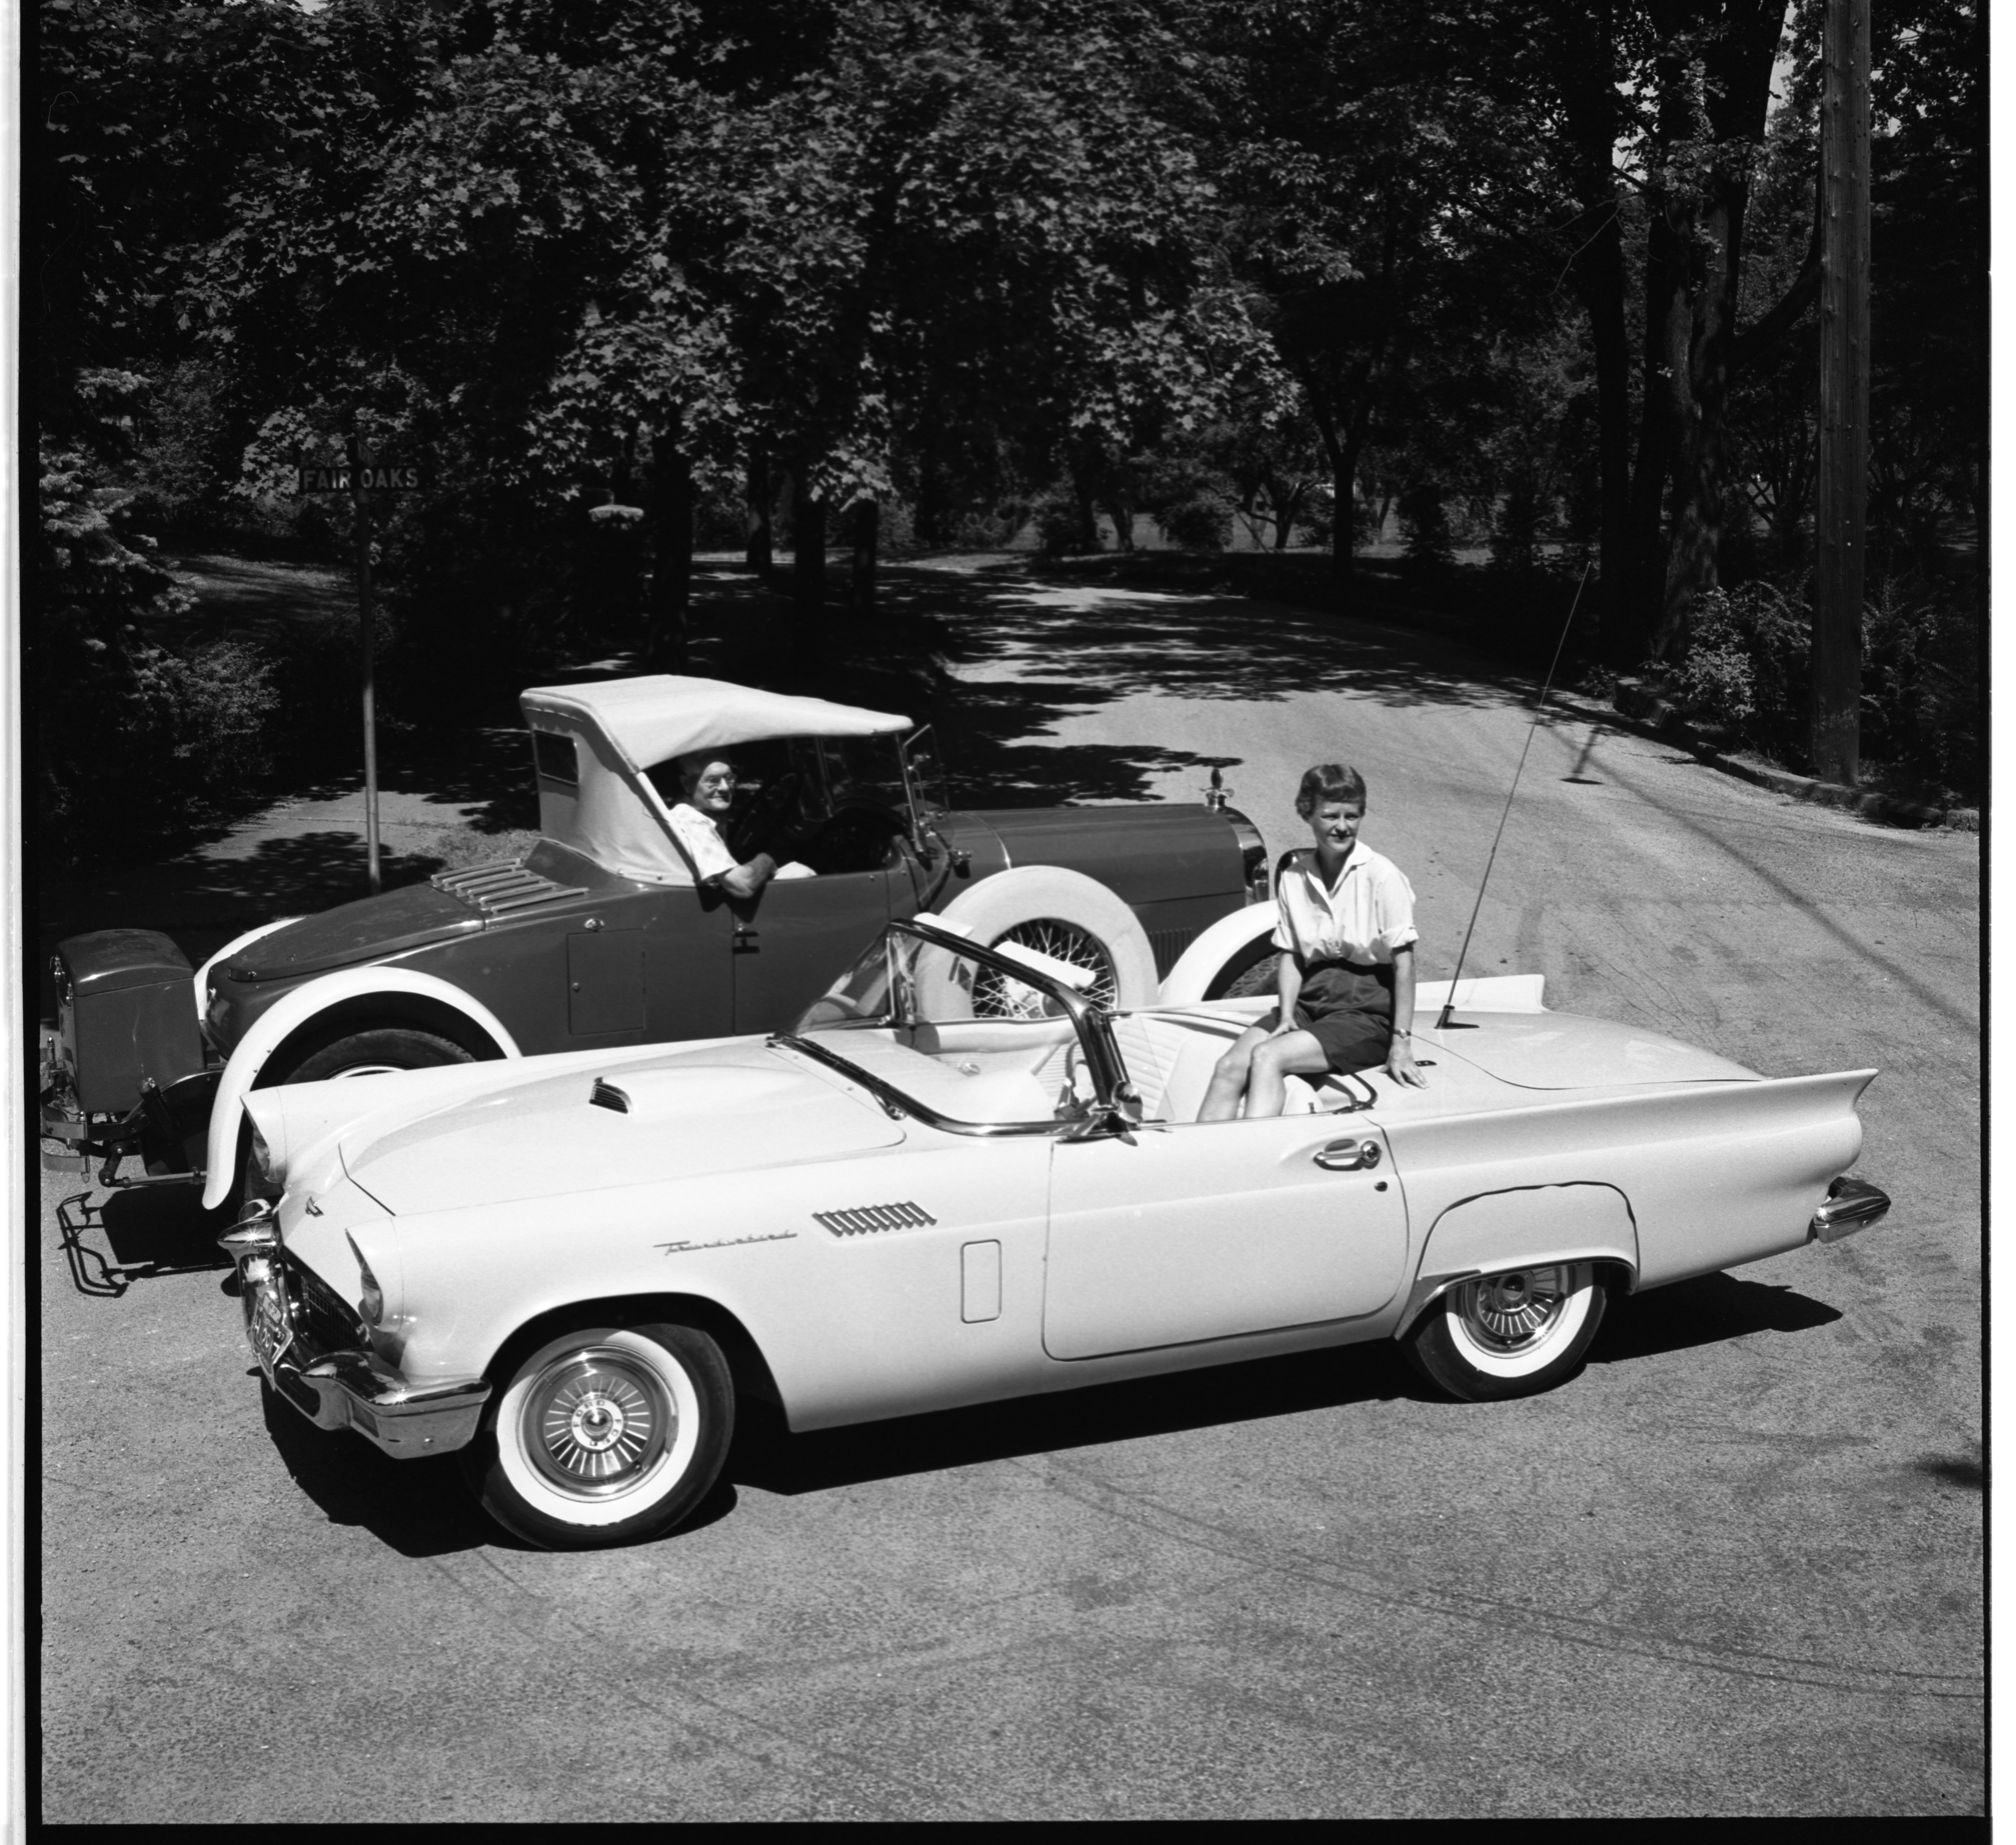 1923 Haynes Roadster & 1957 Ford Thunderbird, August 1957 image